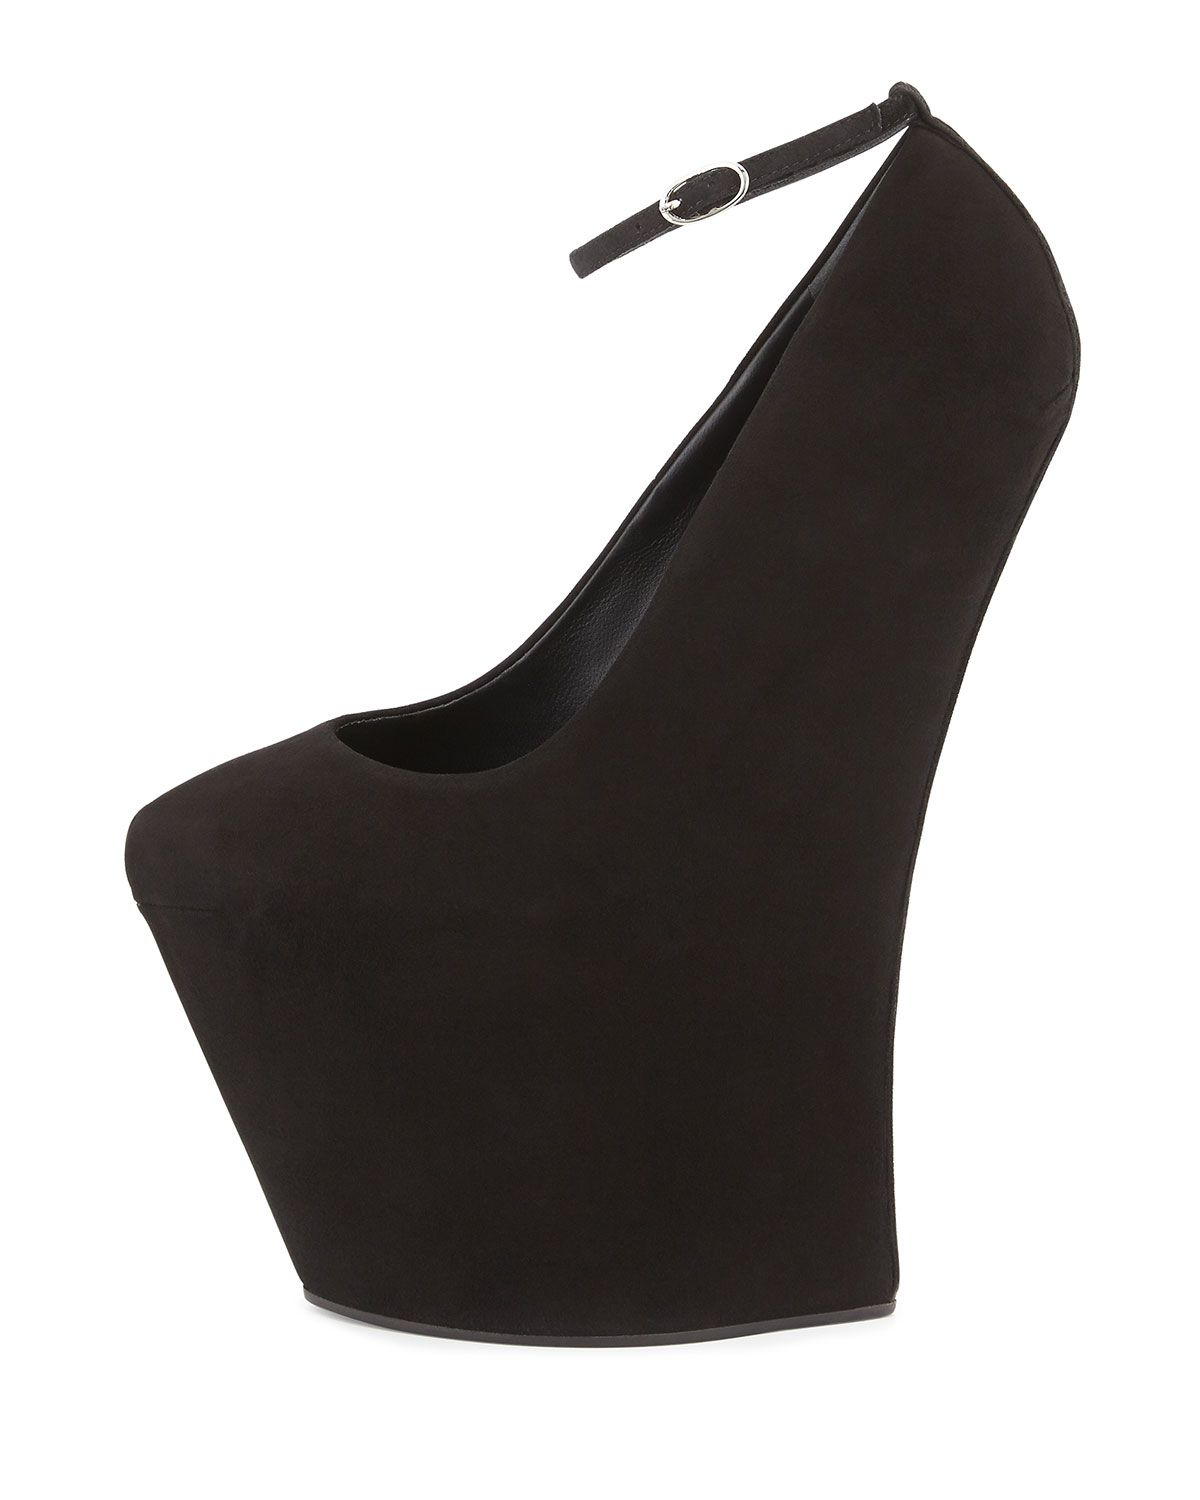 300c210cf9 Giuseppe Zanotti Suede Heel-Less Wedge Pump in Black | Lyst | The ...